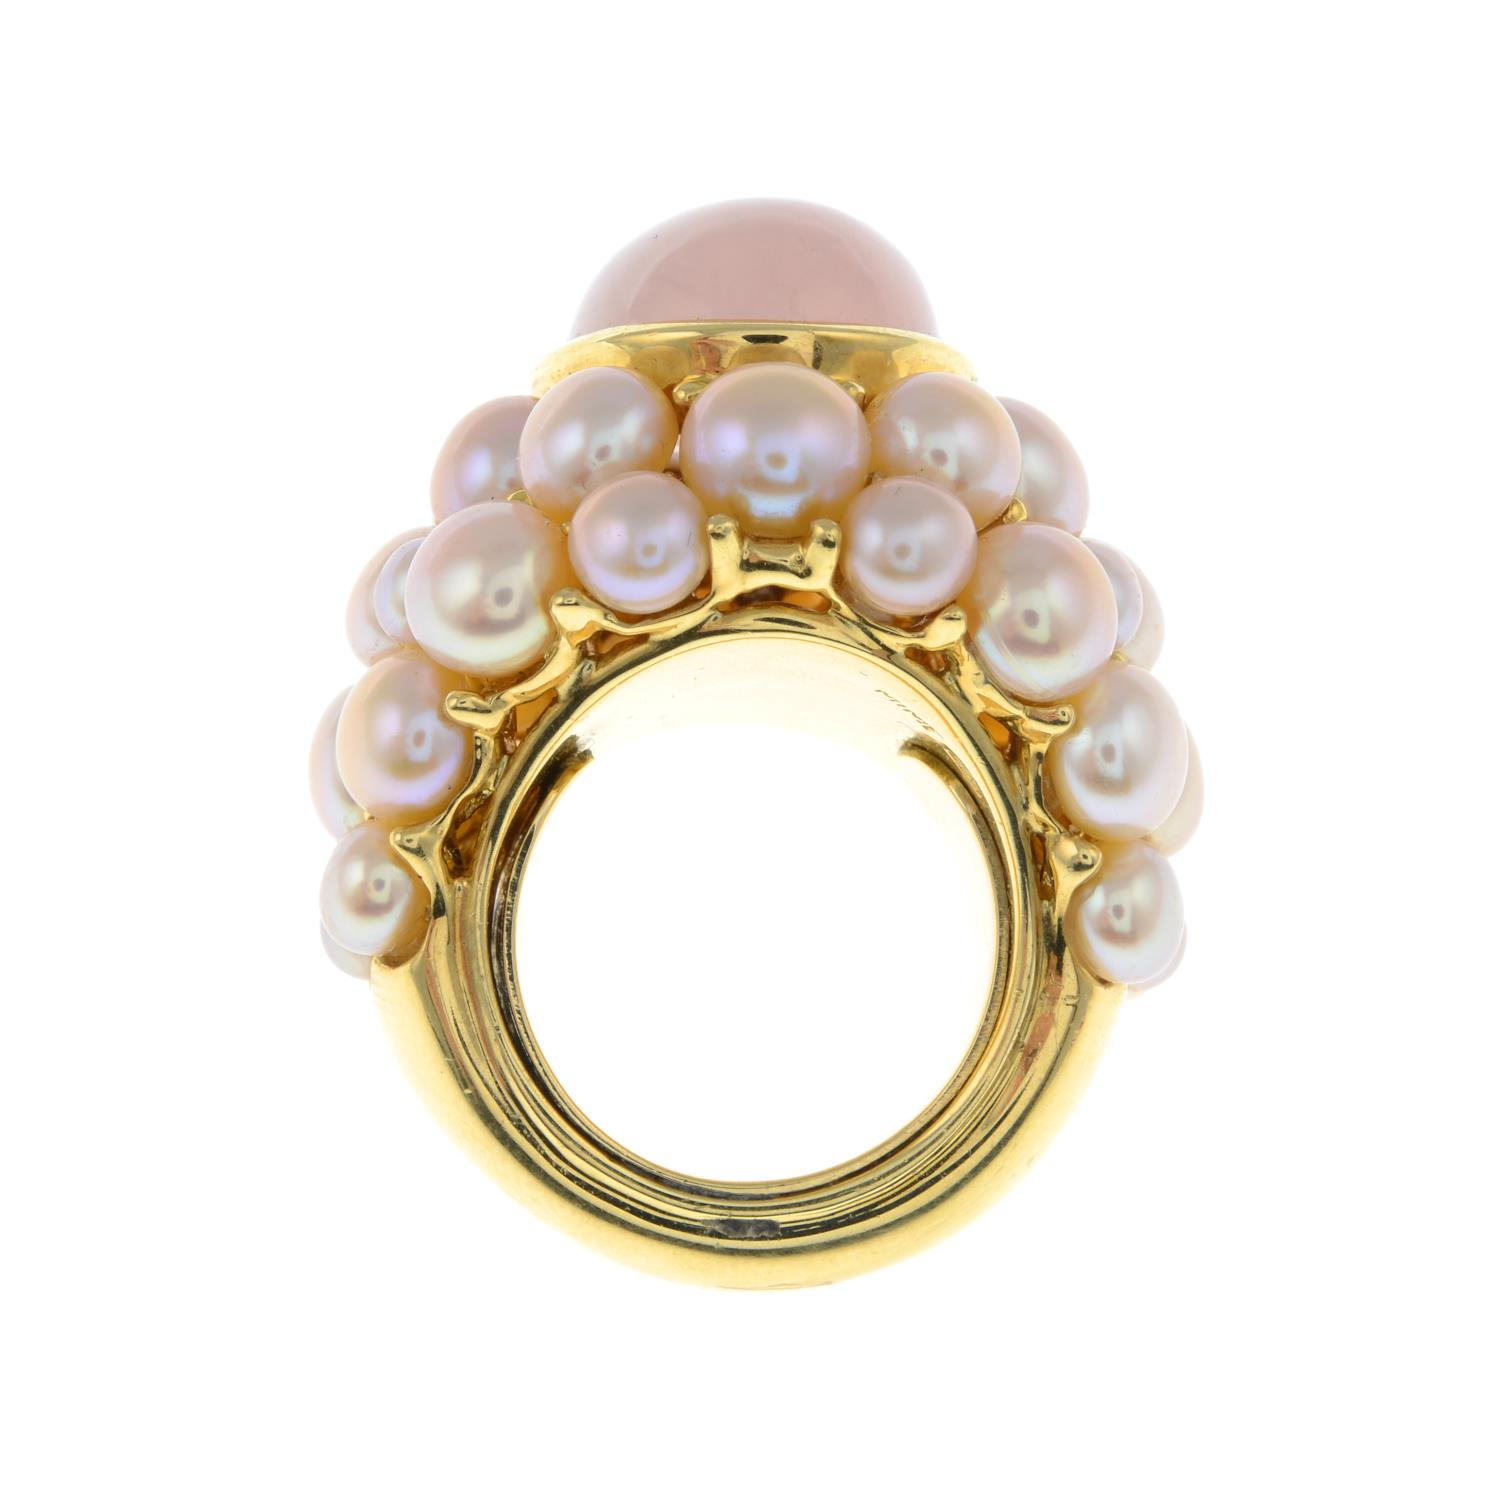 A rose quartz cabochon and pink cultured pearl cocktail ring, by Mimi.Signed Mimi.Stamped 750. - Image 6 of 6